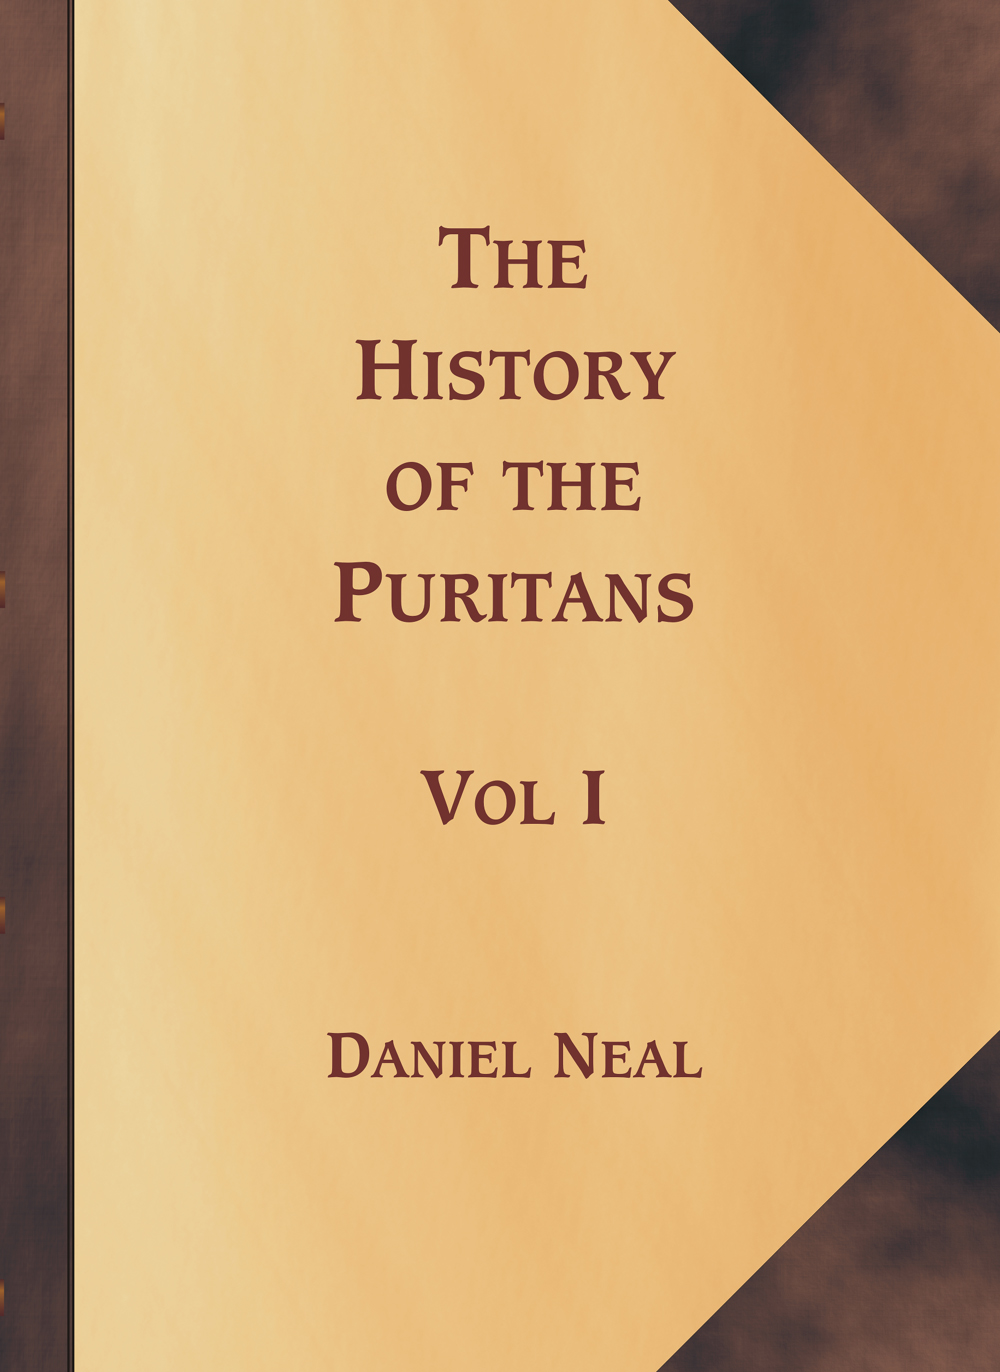 history of the puritans Puritans the puritans first came to america in 1620 on the mayflower  colony  and kept a history of the development of the plymouth colony that was published .